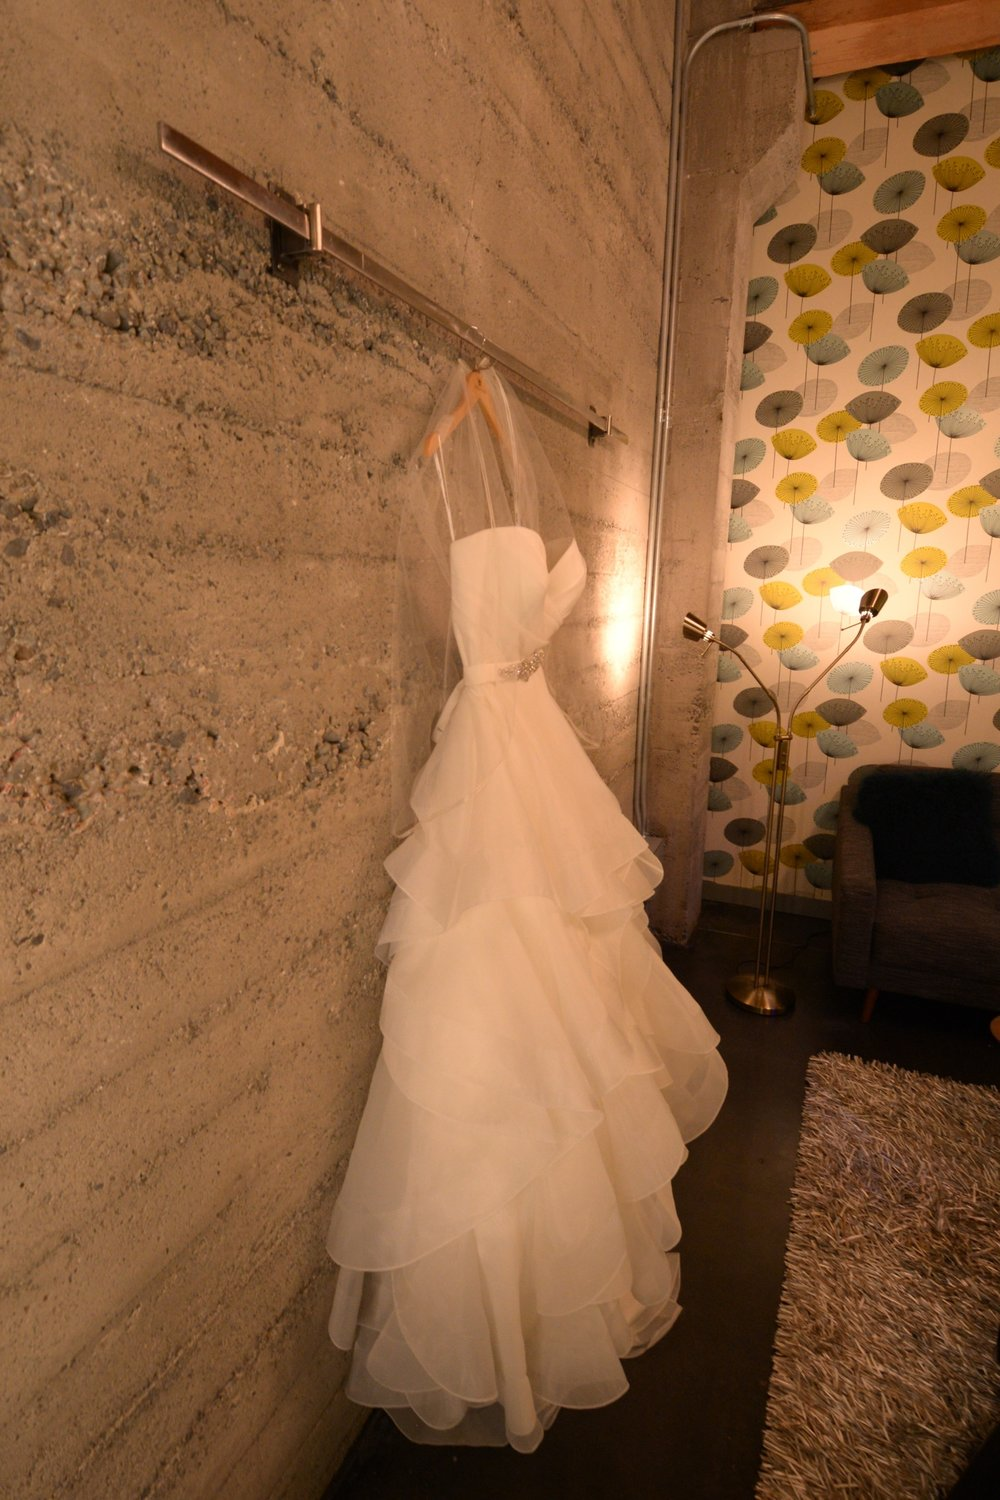 block41-green-room-with-wedding-dress-1.jpg